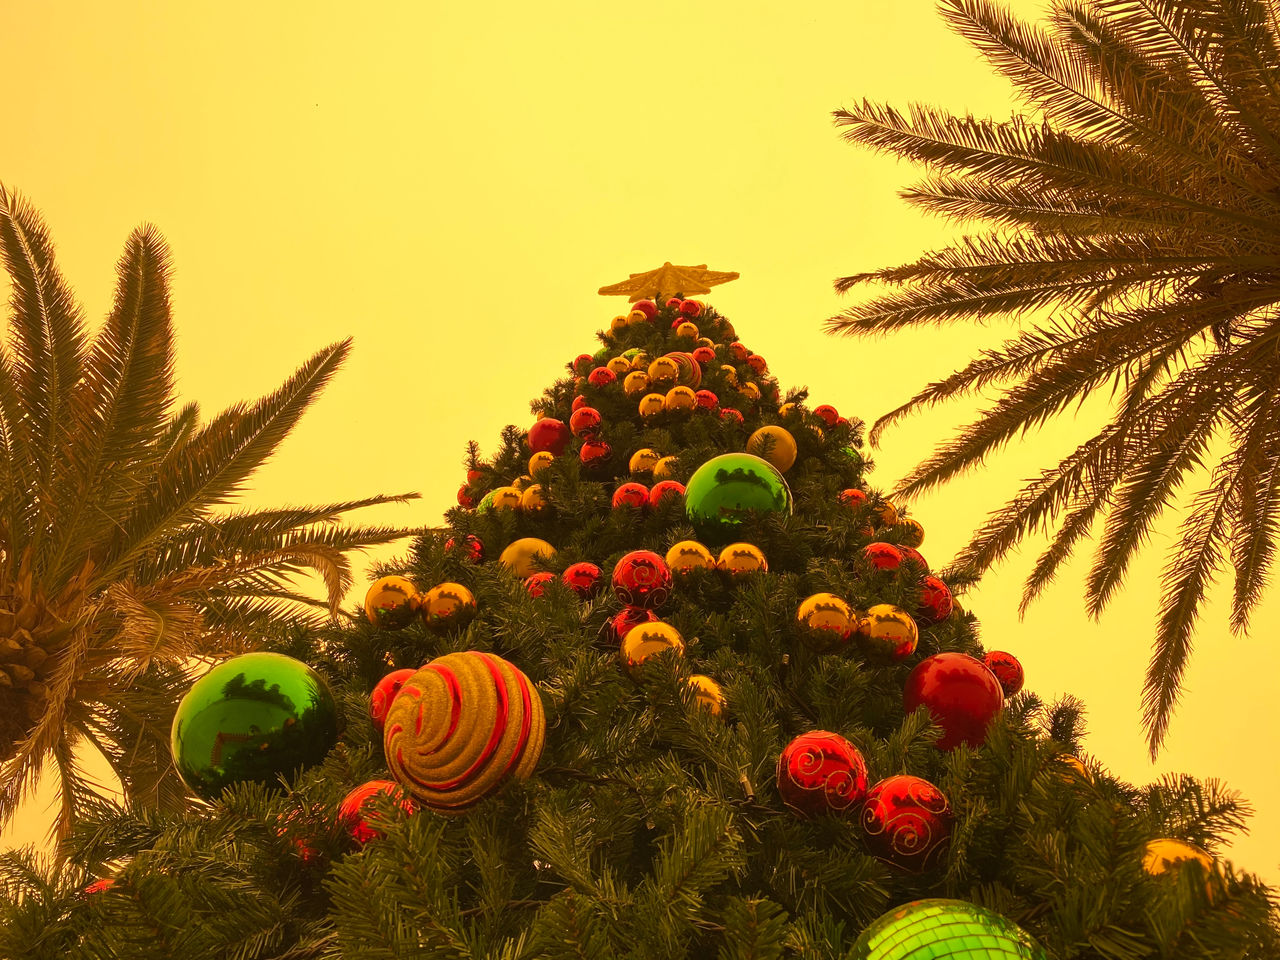 plant, tree, decoration, no people, growth, nature, celebration, sky, holiday, christmas decoration, christmas, beauty in nature, green color, christmas tree, land, christmas ornament, food, close-up, food and drink, outdoors